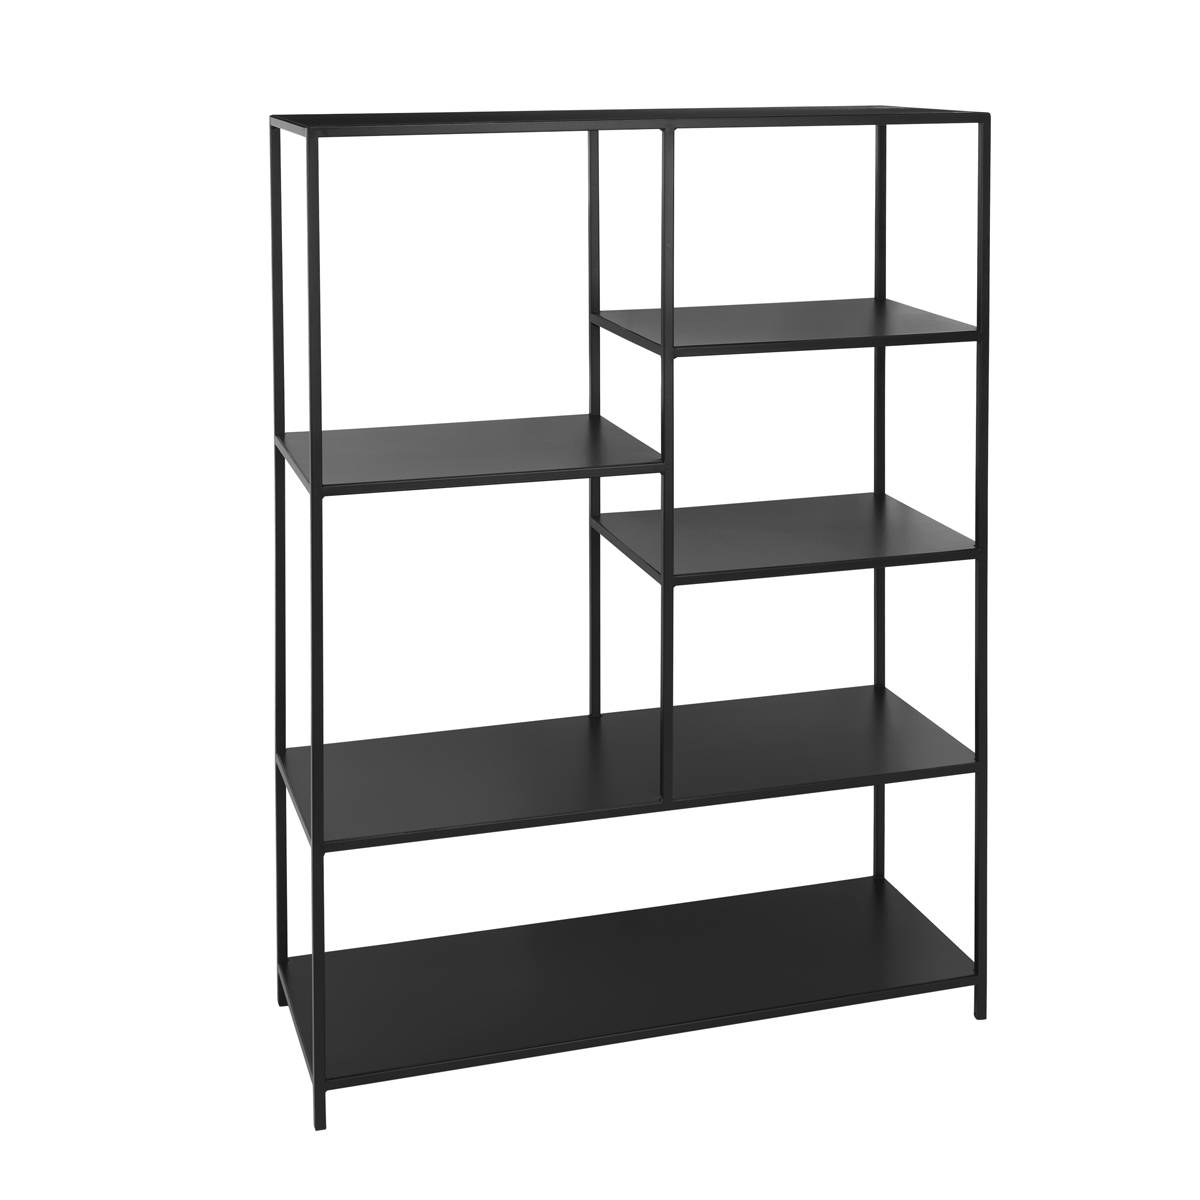 Unoliving Ryle Bookcase Reol i jern - Sort